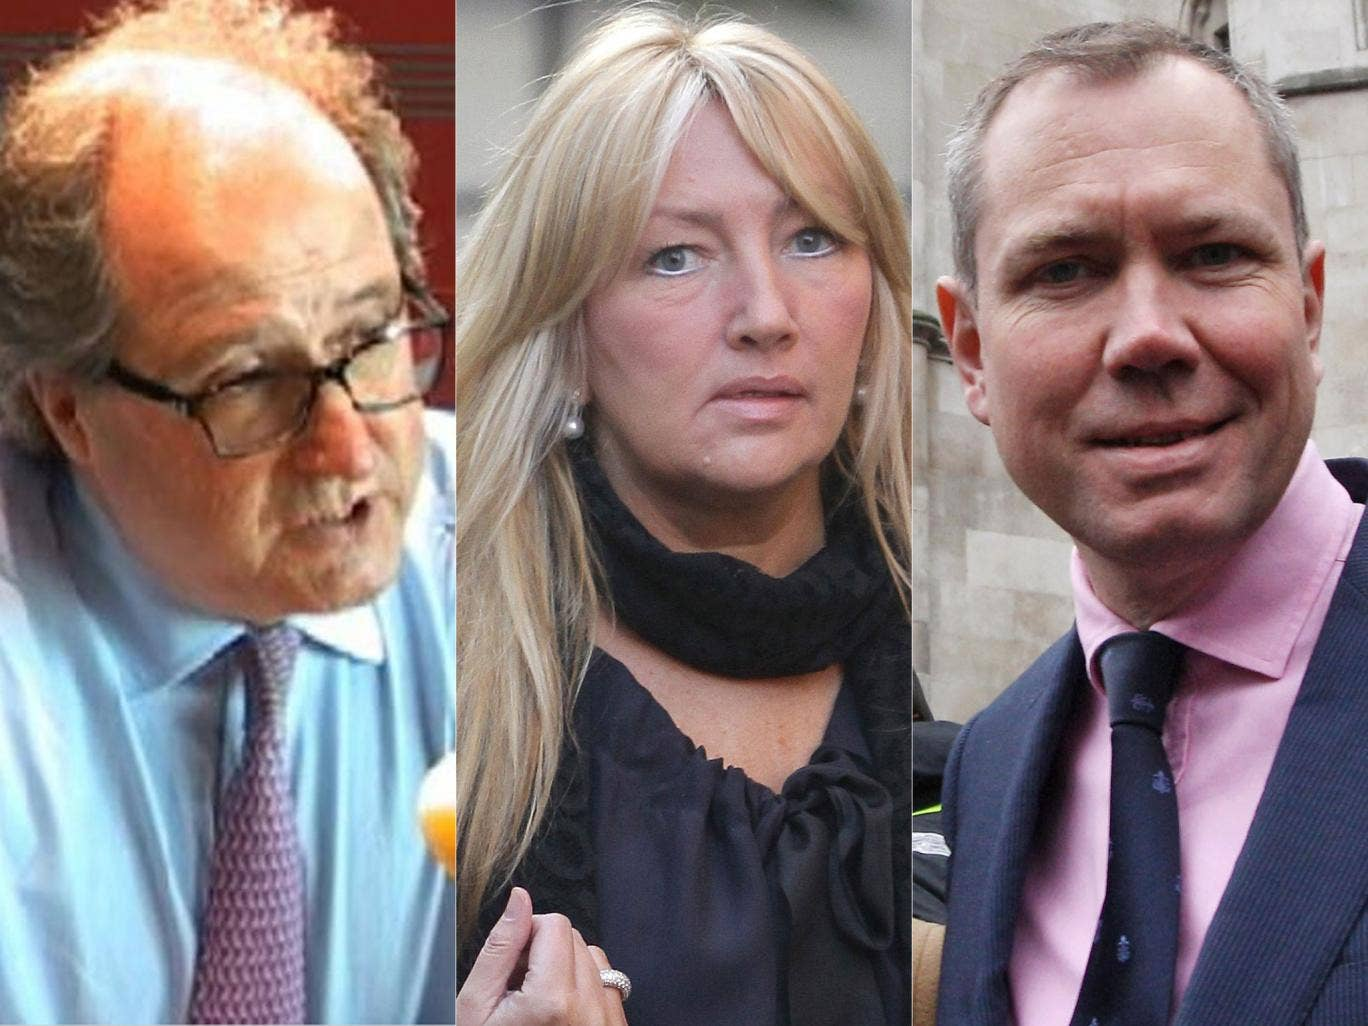 Paul Vickers, Company Secretary and Group Legal Director, Trinity Mirror; Sly Bailey, former chief executive Trinity Mirror (2003-2012); James Hipwell, former Mirror business journalist